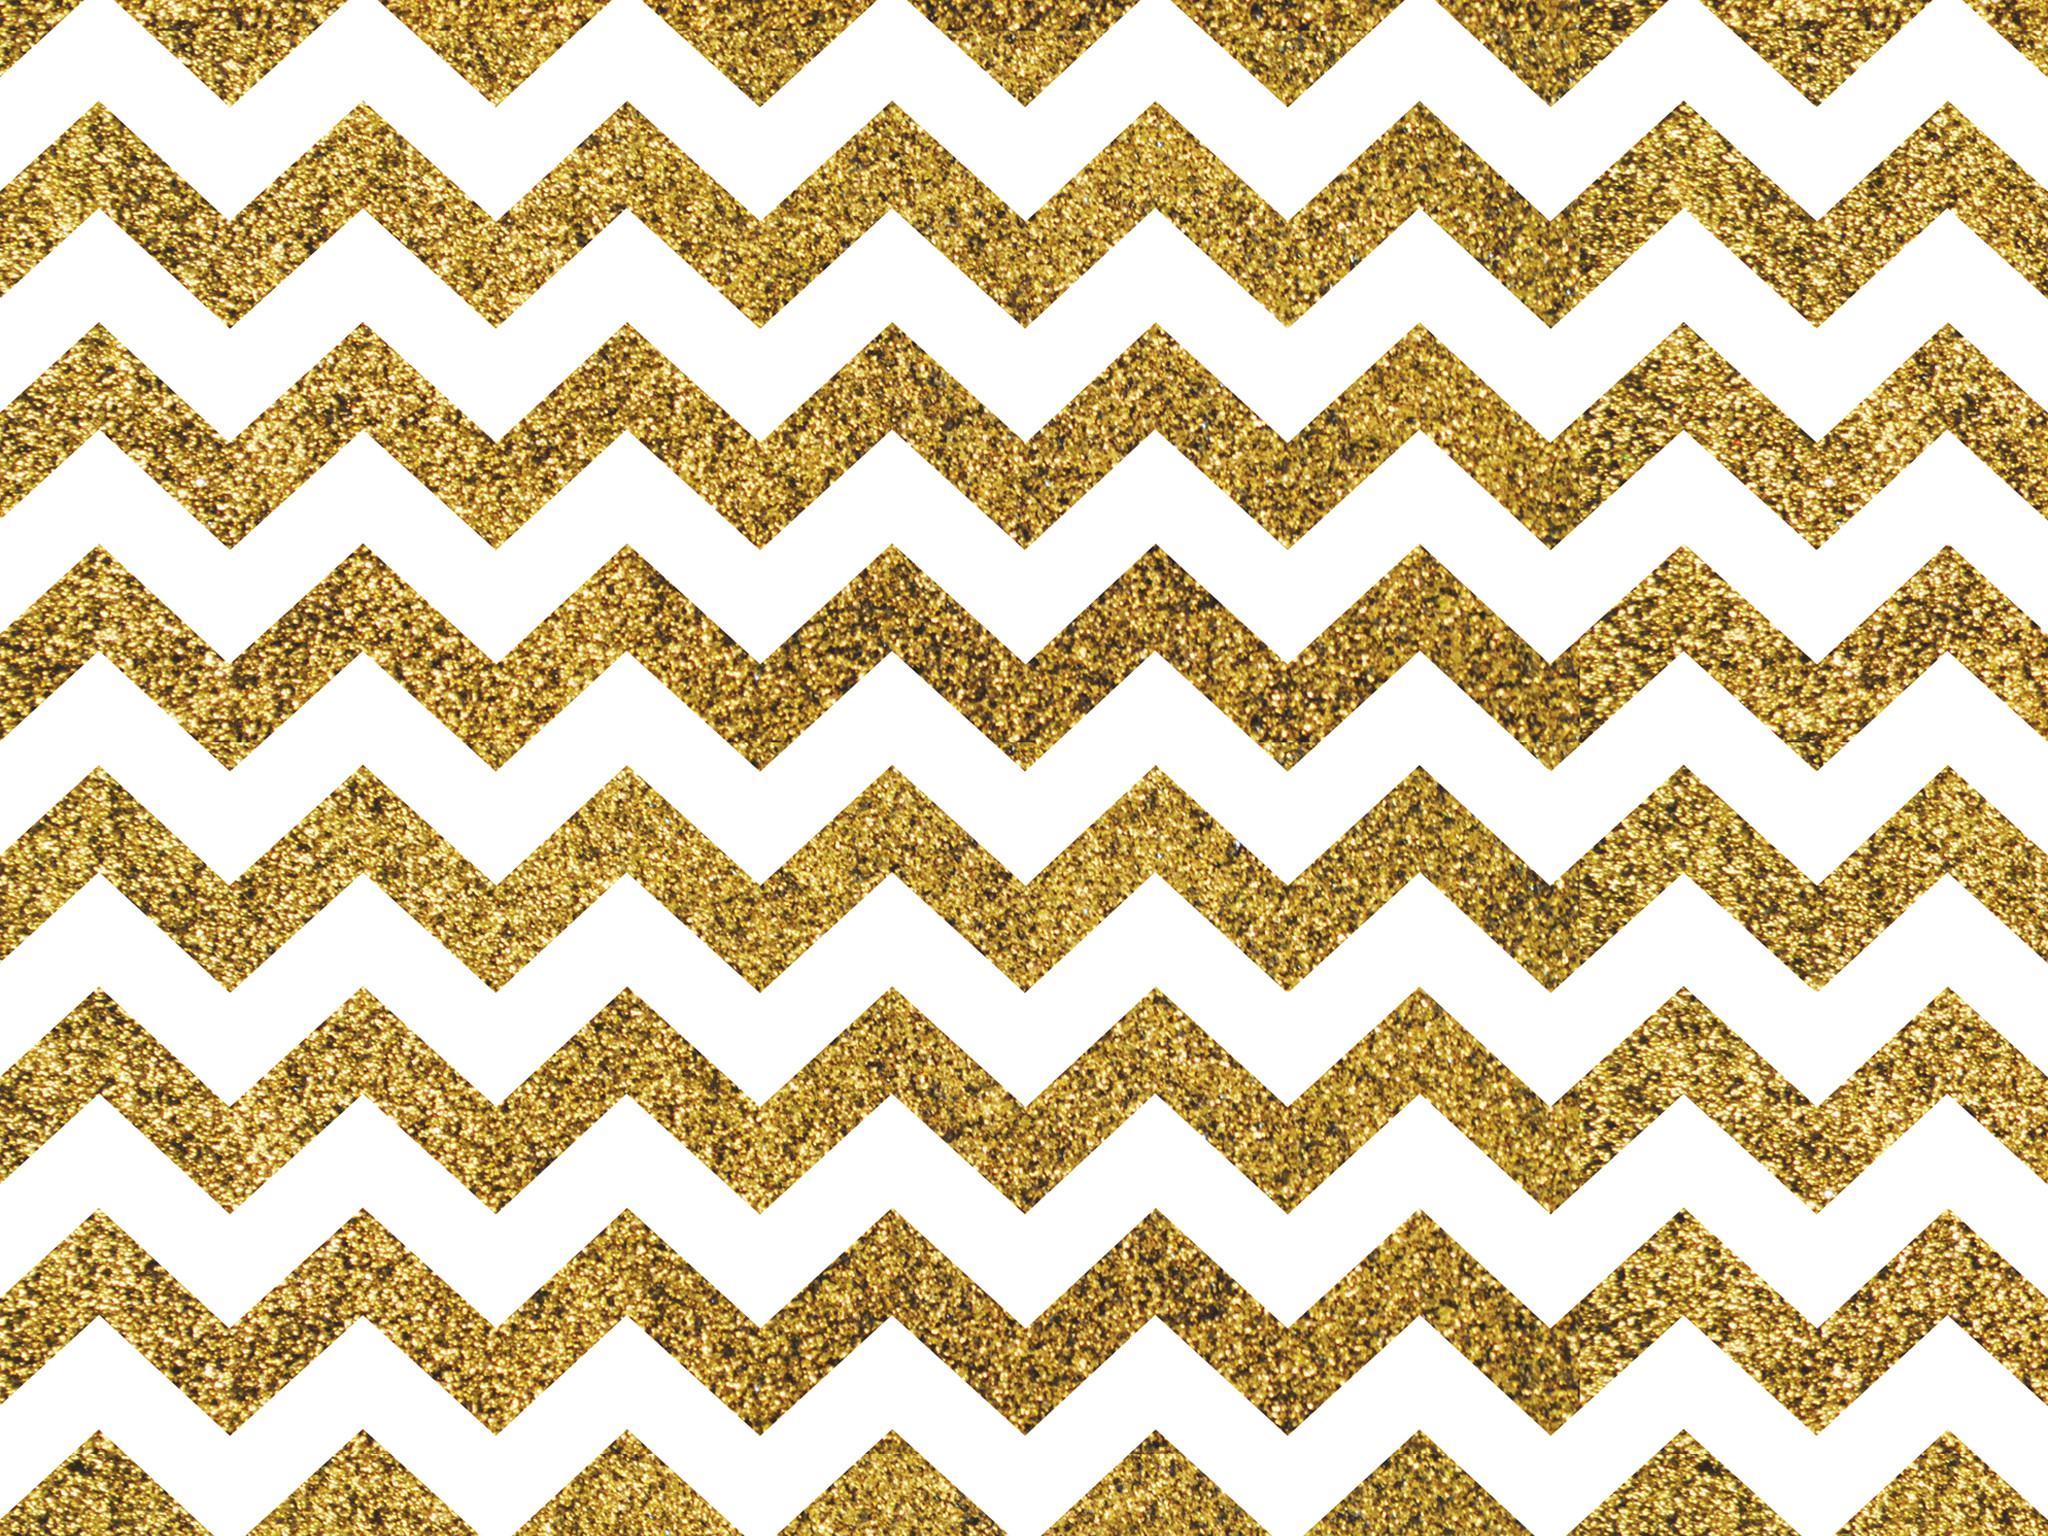 Decor: A Touch of Gold